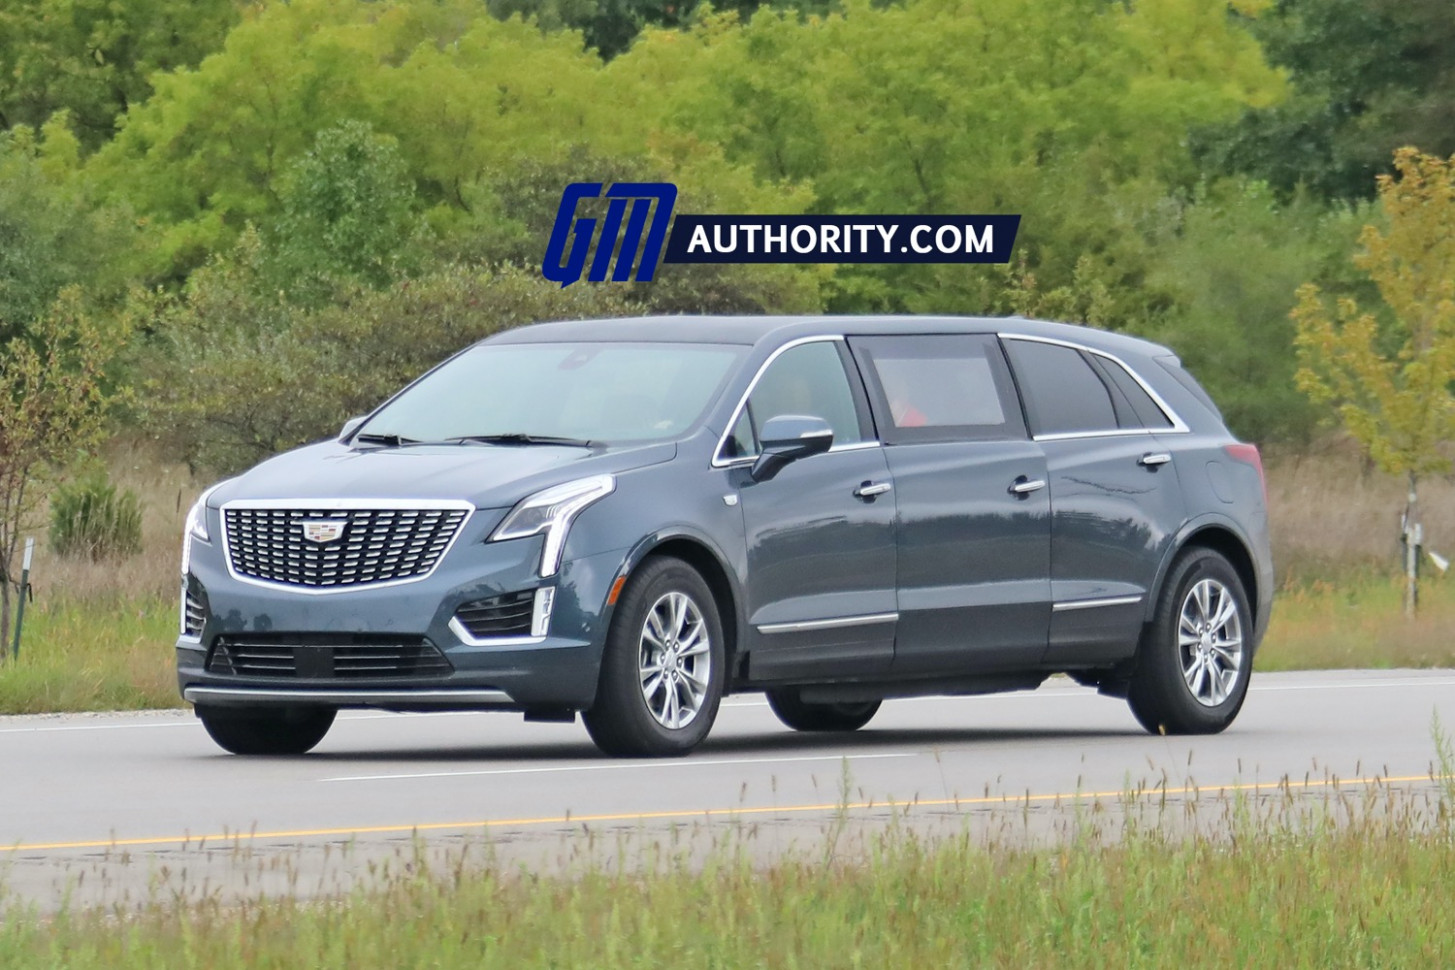 Price, Design and Review 2022 Spy Shots Cadillac Xt5